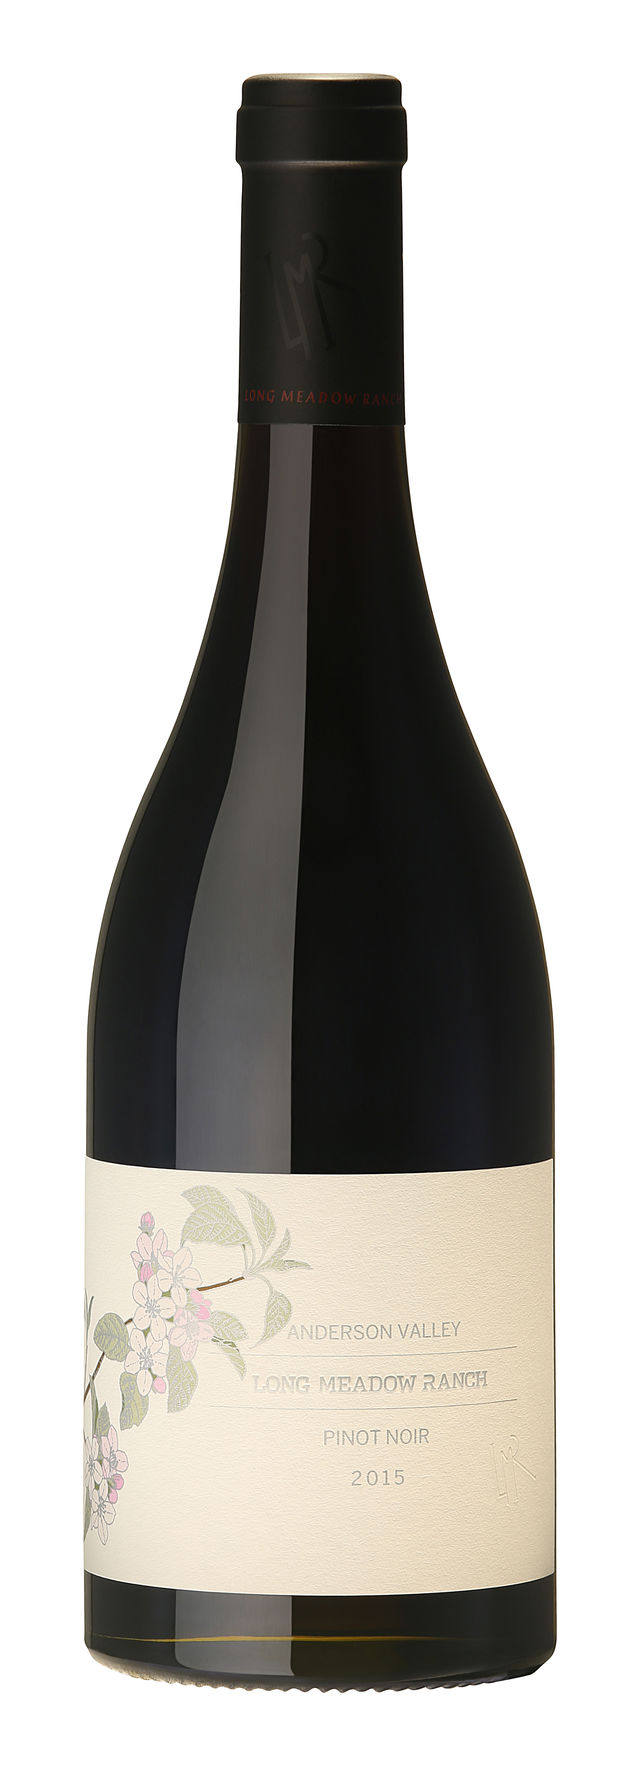 2015 Long Meadow Ranch, Pinot Noir